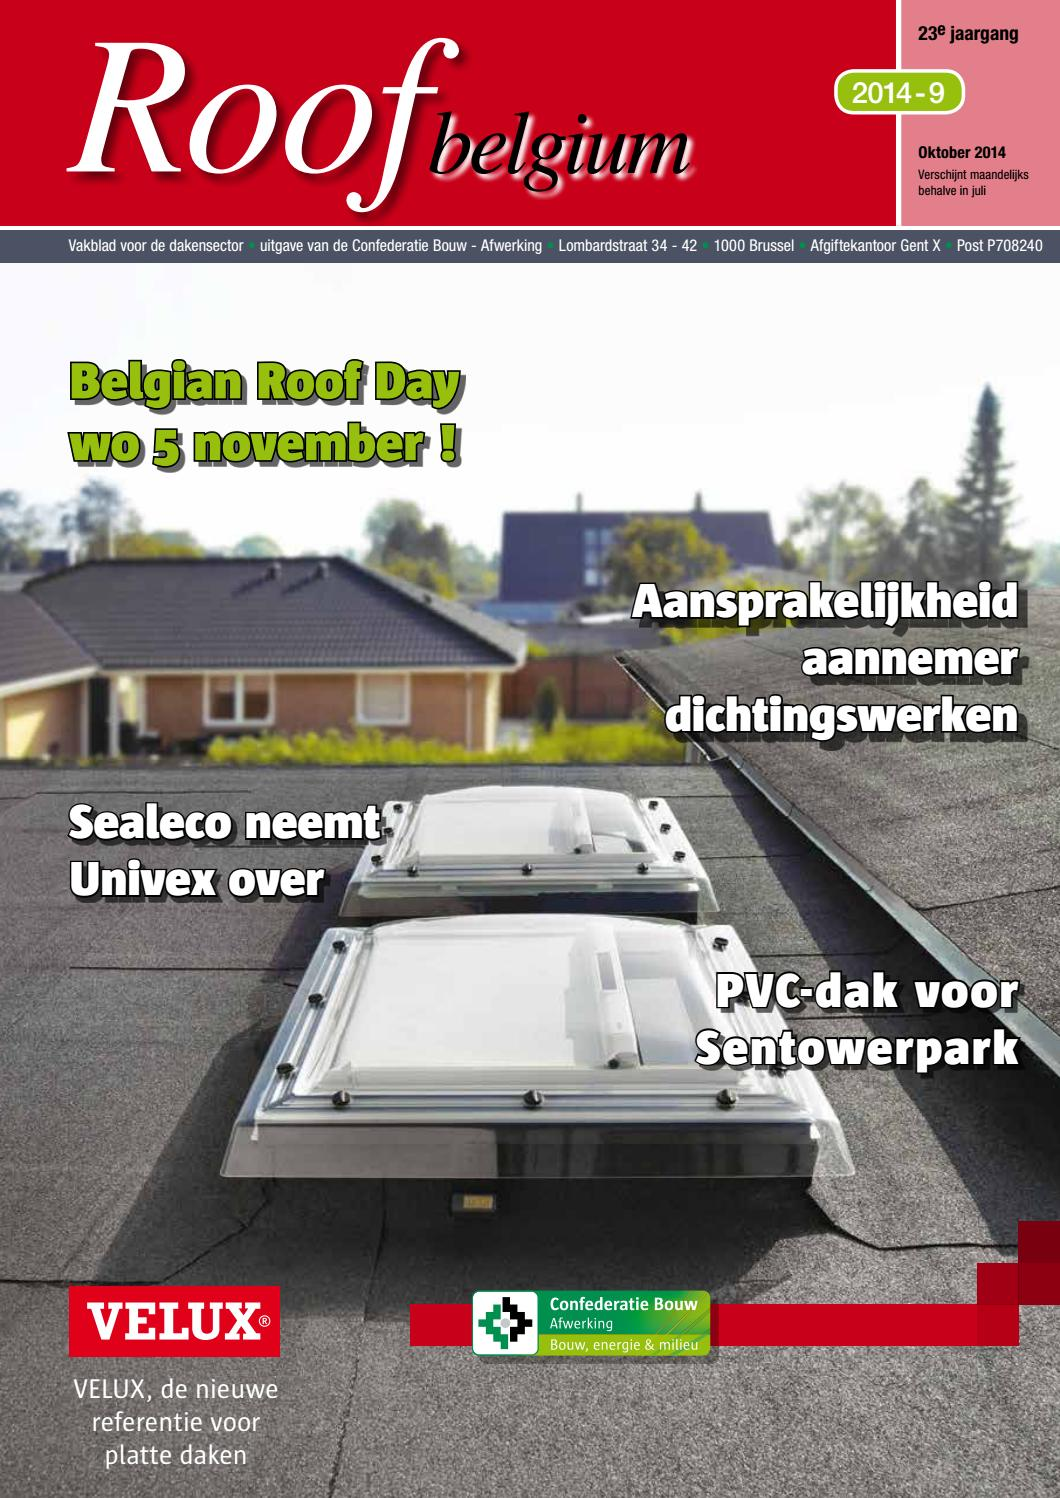 Roof belgium 2014 9 lr by confed   issuu